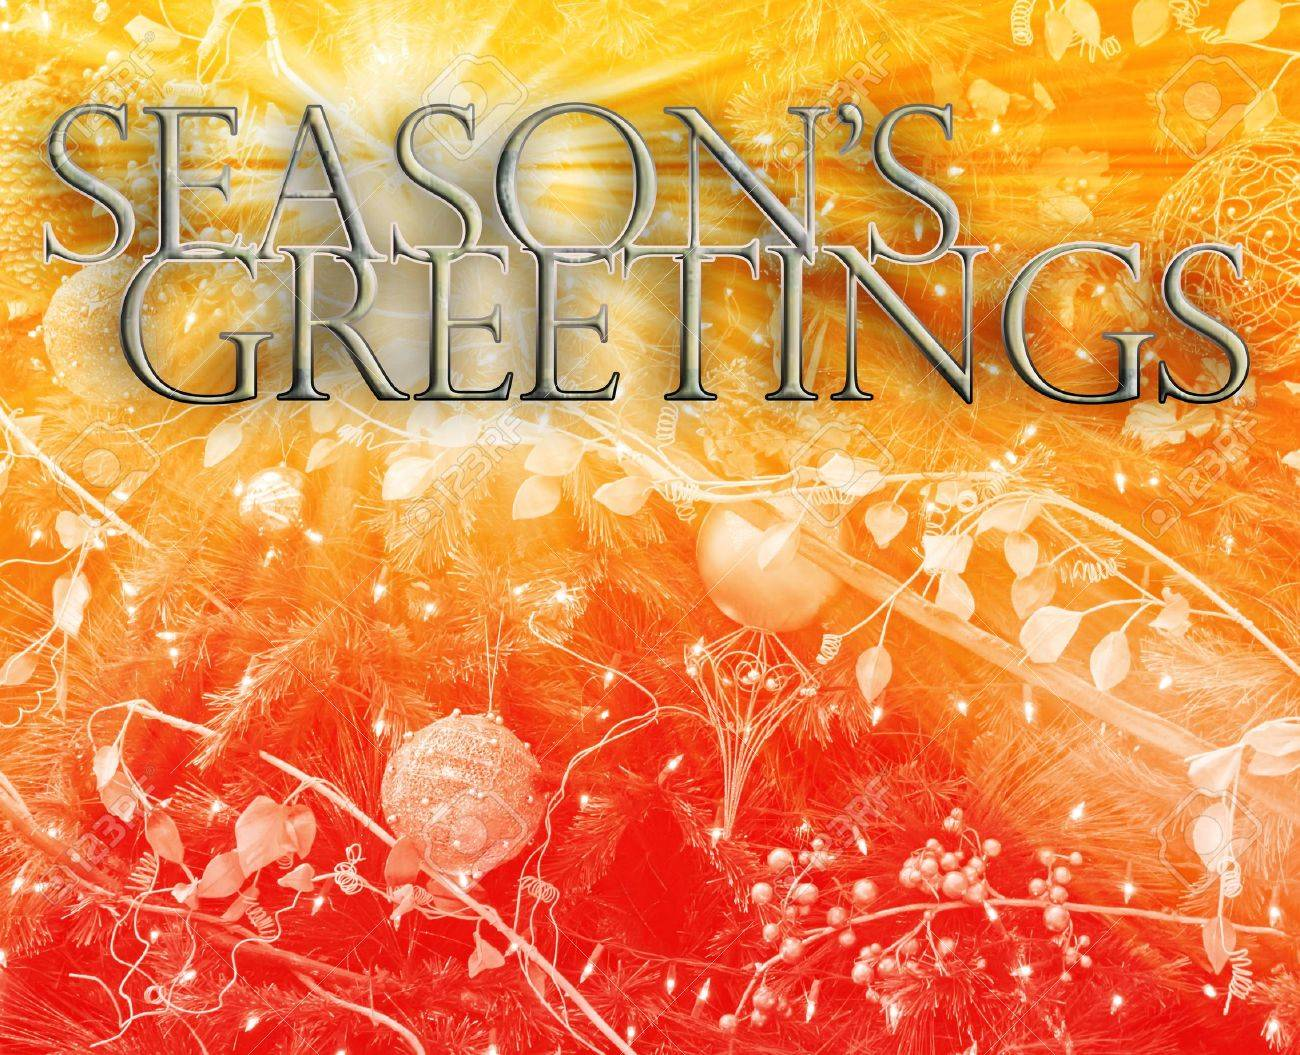 Merry christmas seasons greetings happy new year concept merry christmas seasons greetings happy new year concept background illustration stock illustration 6165923 kristyandbryce Choice Image